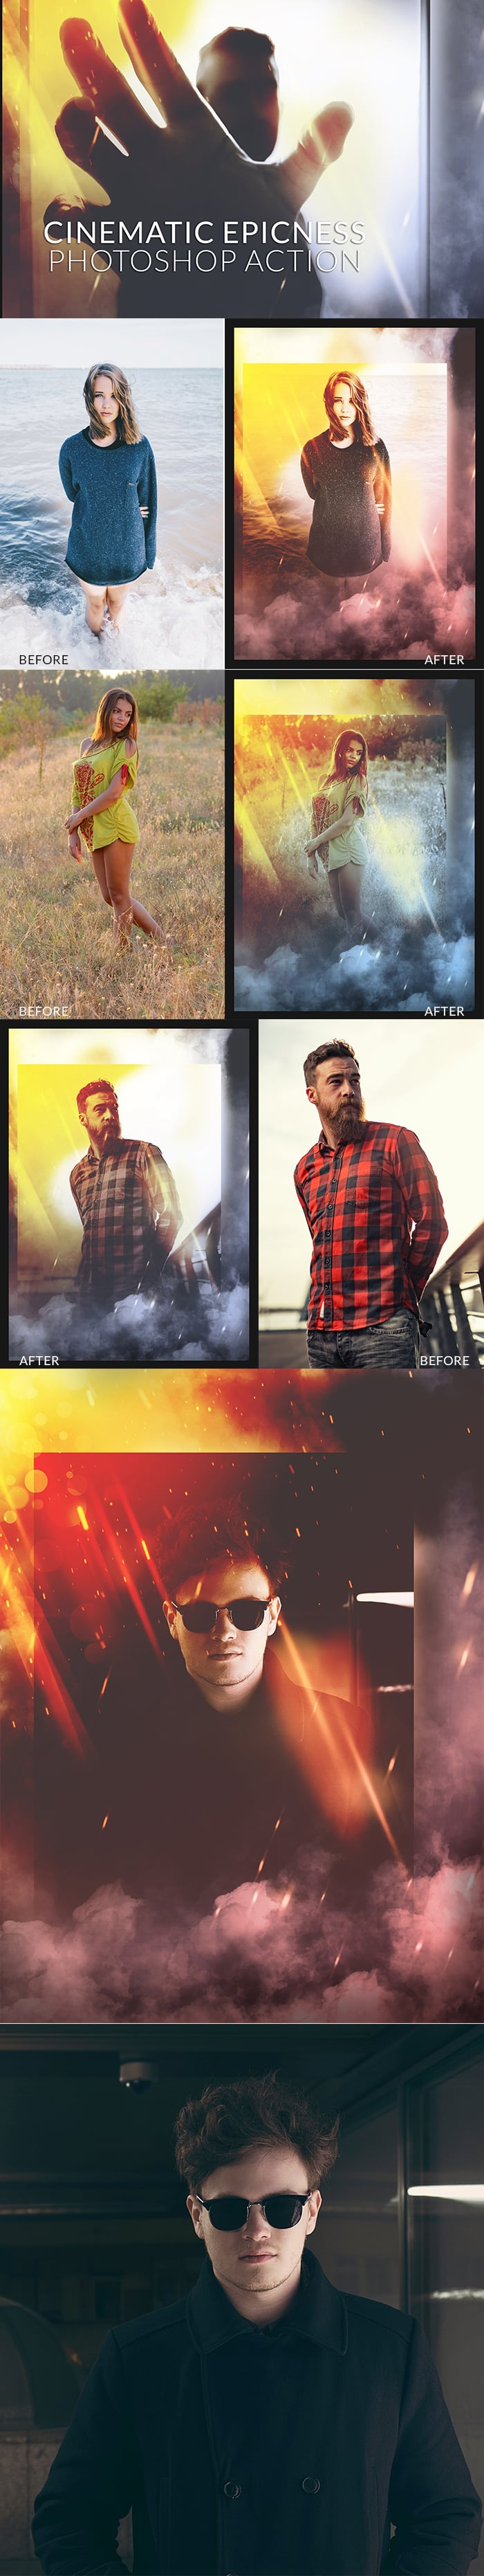 Photoshop Actions for Photographers. $9 Only! - 700px cinematic epicness